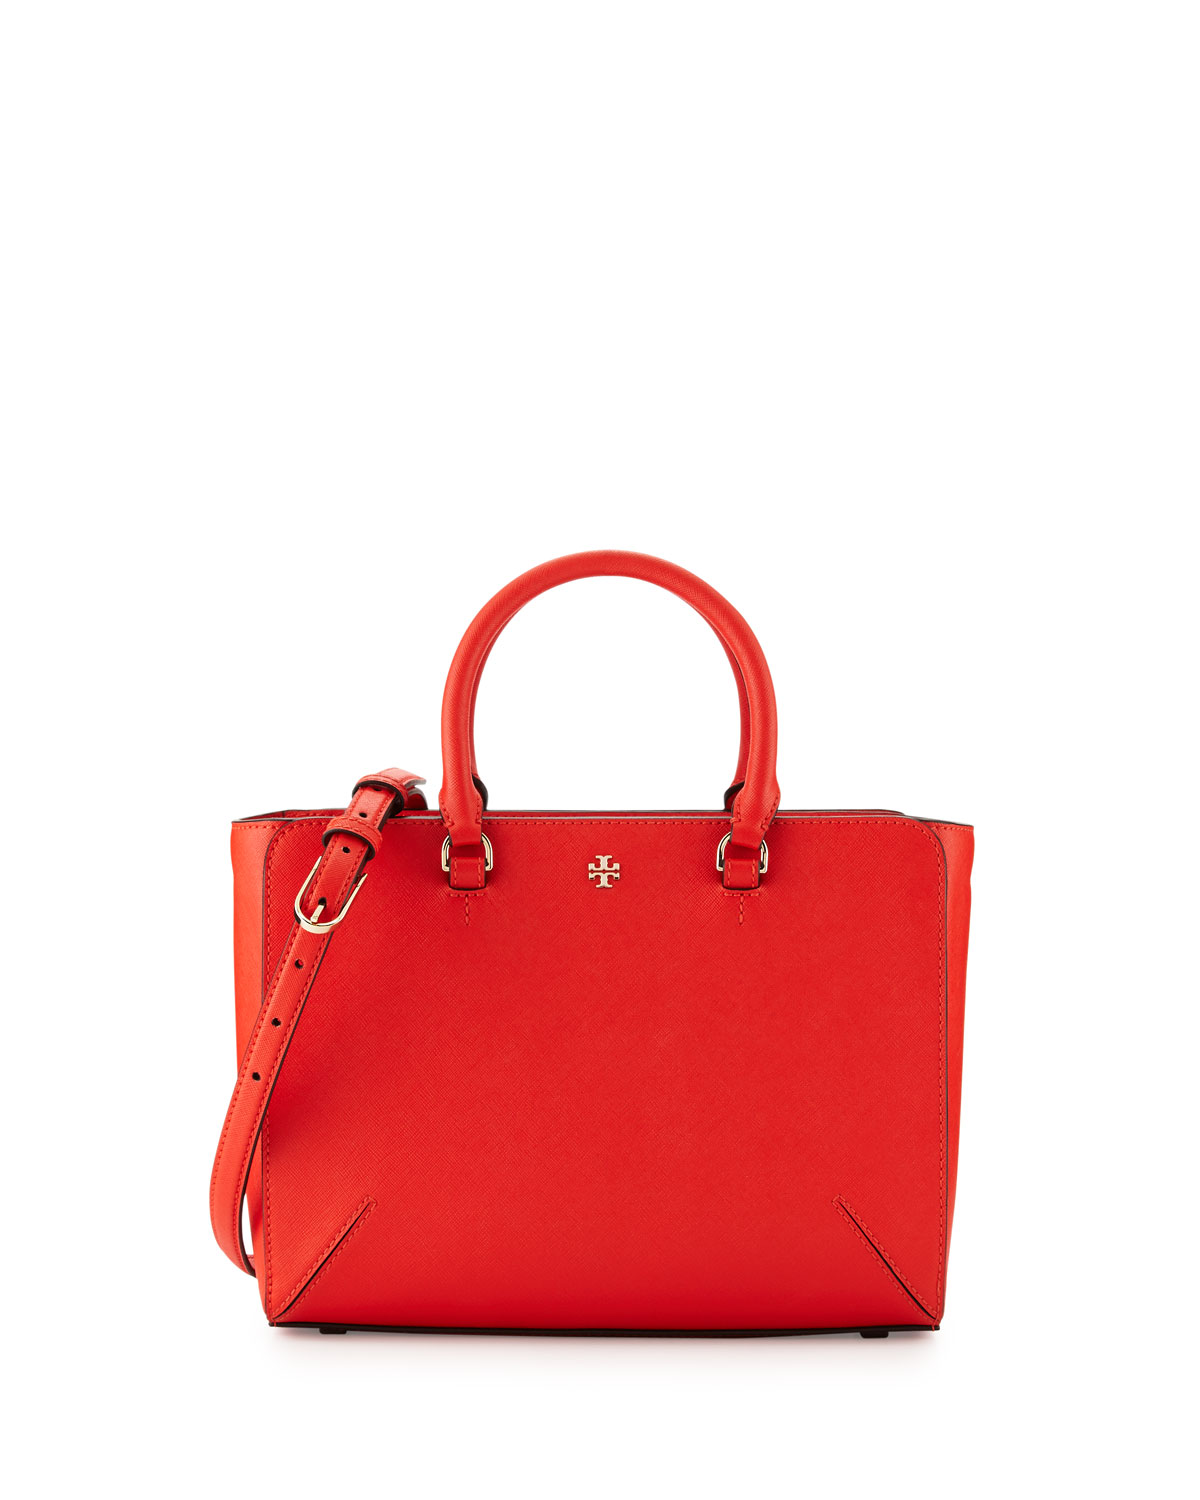 f0f63e0558e Tory Burch Robinson Small Zip Tote Bag, Poppy Red | Neiman Marcus